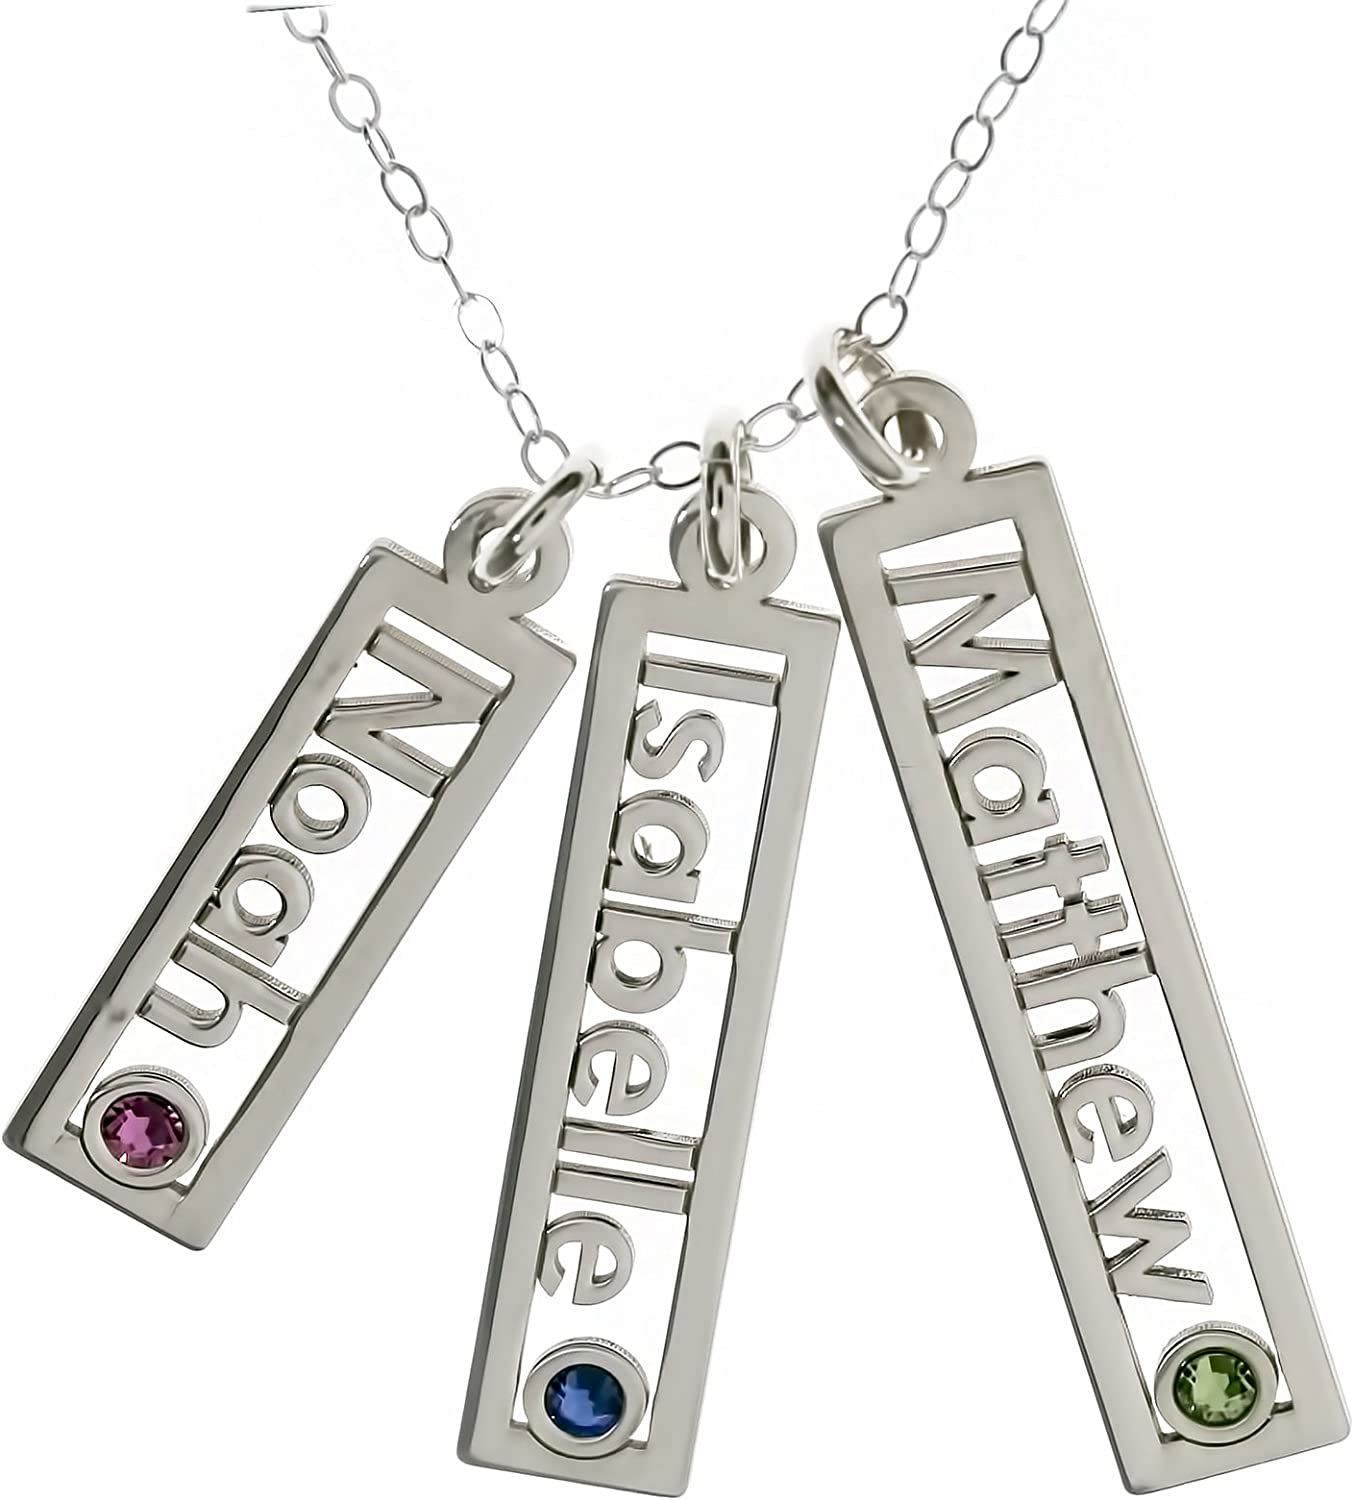 Makes Great Birthday Gift. Customize a Name Charm AJs Collection Personalized Rectangle Triple Open Name Sterling Silver Necklace with Birthstone Setting Sterling Silver Cable Chain for All